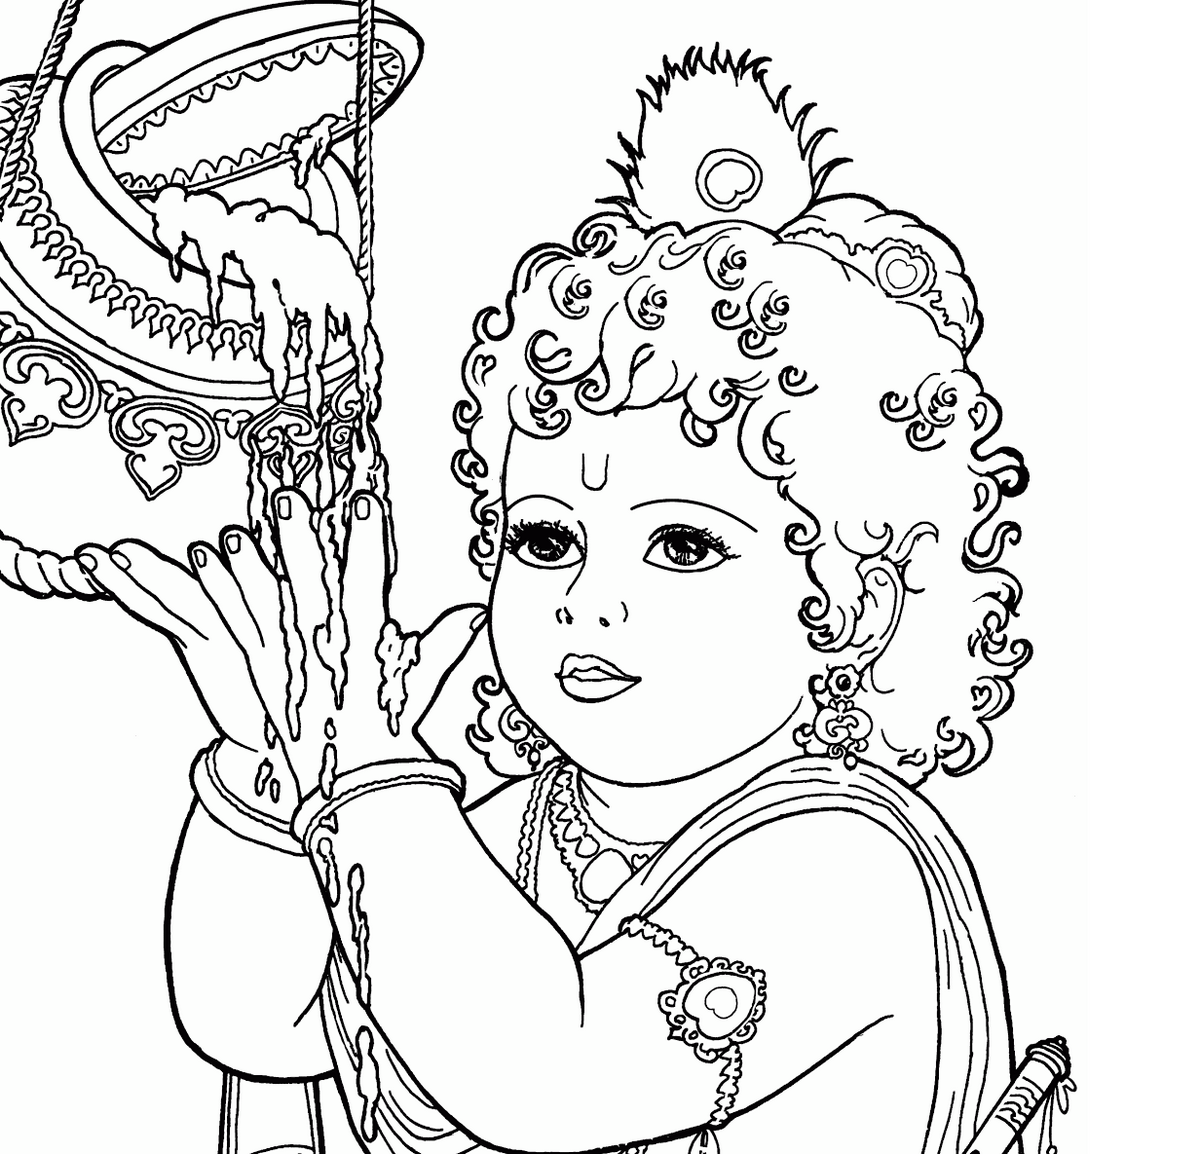 baby-krishna-coloring-page-online